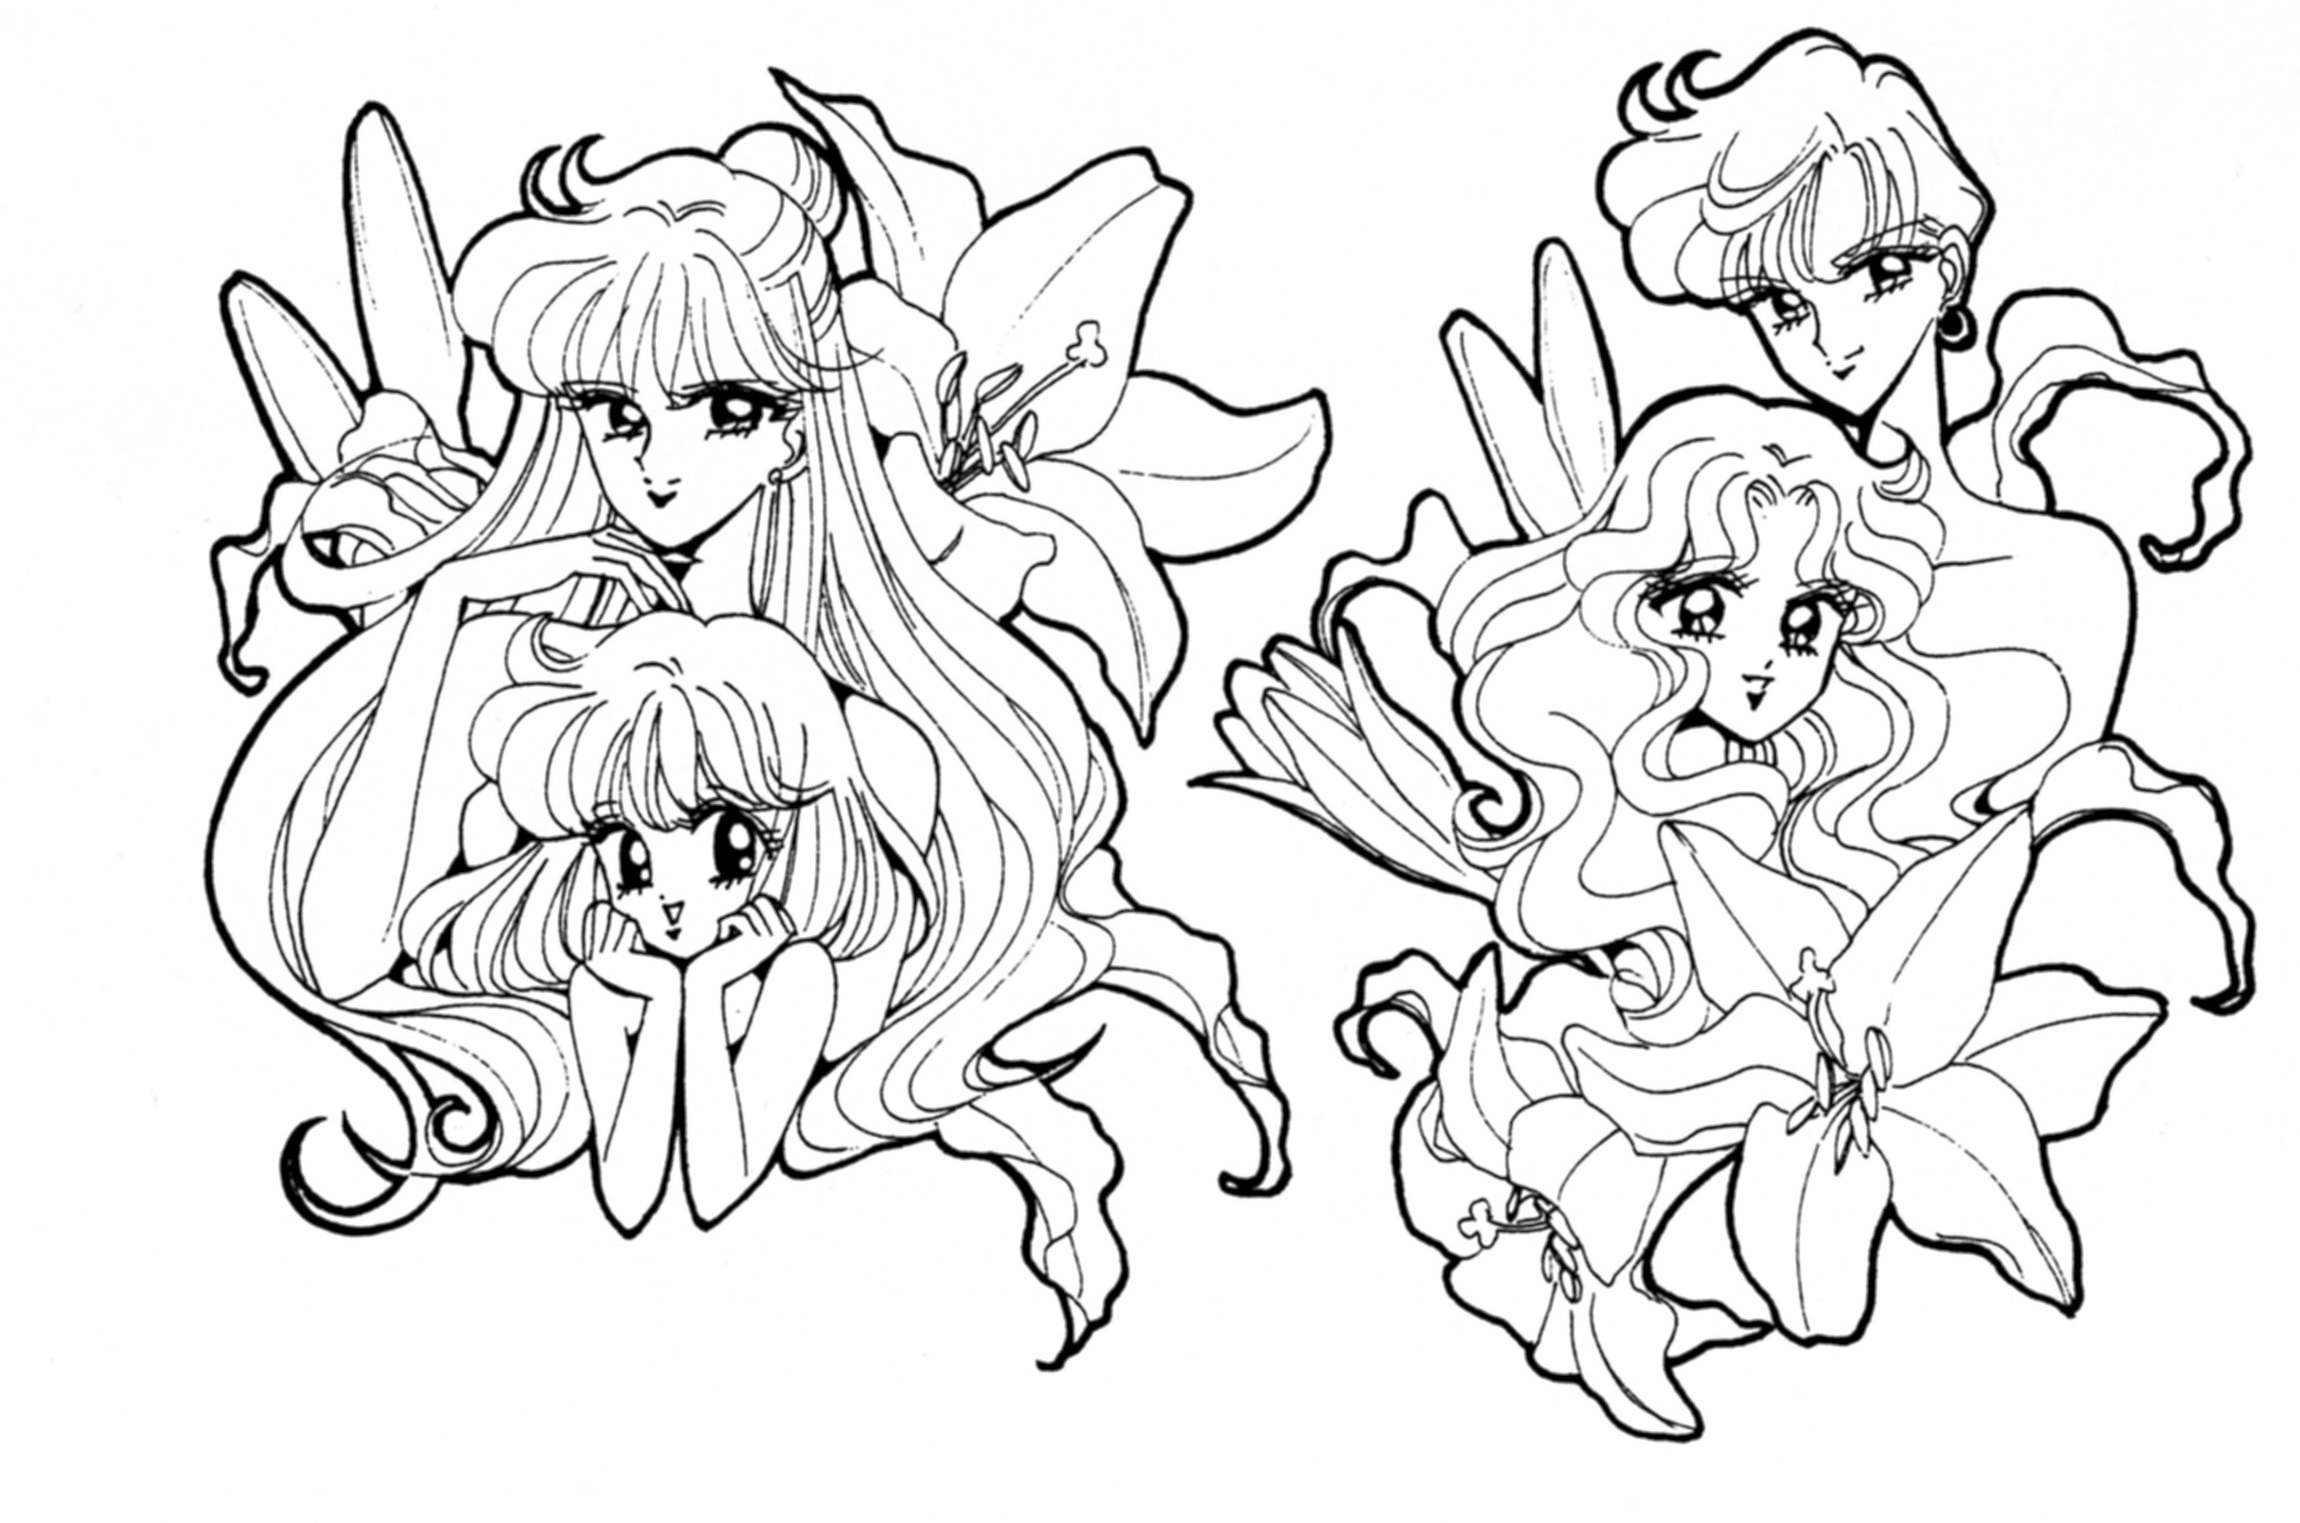 Outer_Senshi_Princesses furthermore girl scout cookie coloring 1 on girl scout cookie coloring also girl scout cookie coloring 2 on girl scout cookie coloring together with girl scout cookie coloring 3 on girl scout cookie coloring in addition girl scout cookie coloring 4 on girl scout cookie coloring